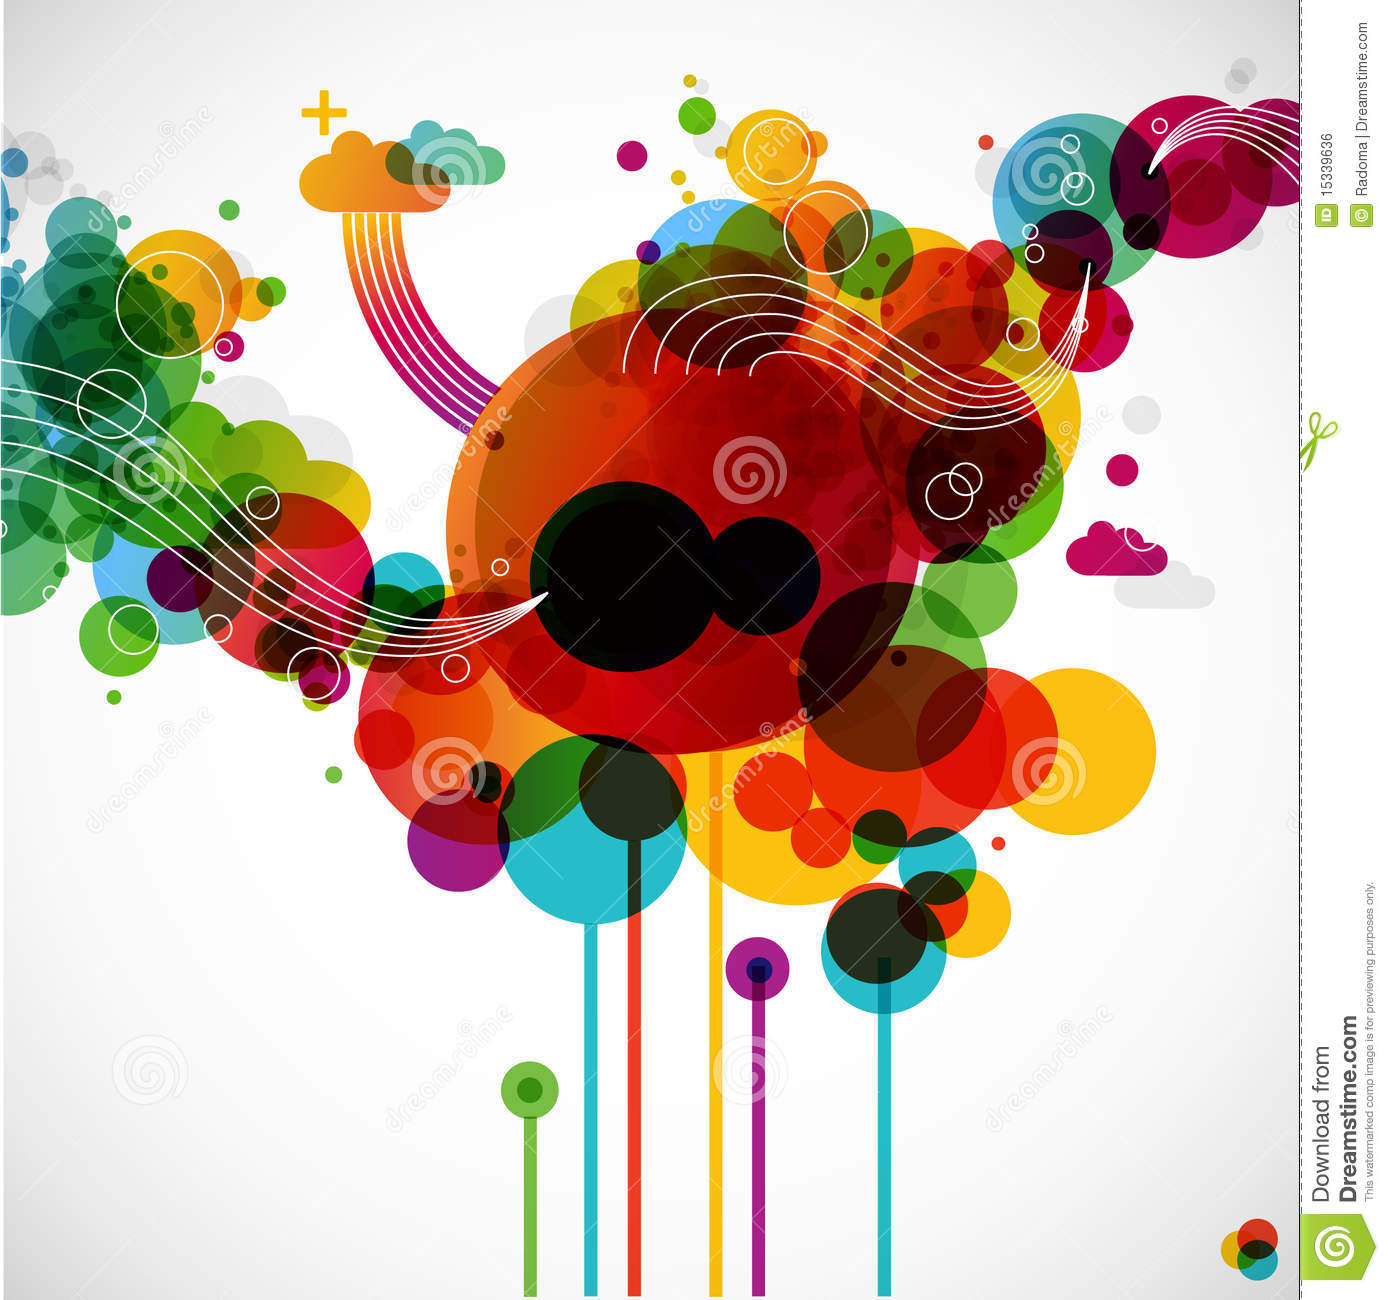 Art Design On Line : Funky graphic design stock vector image of creativity